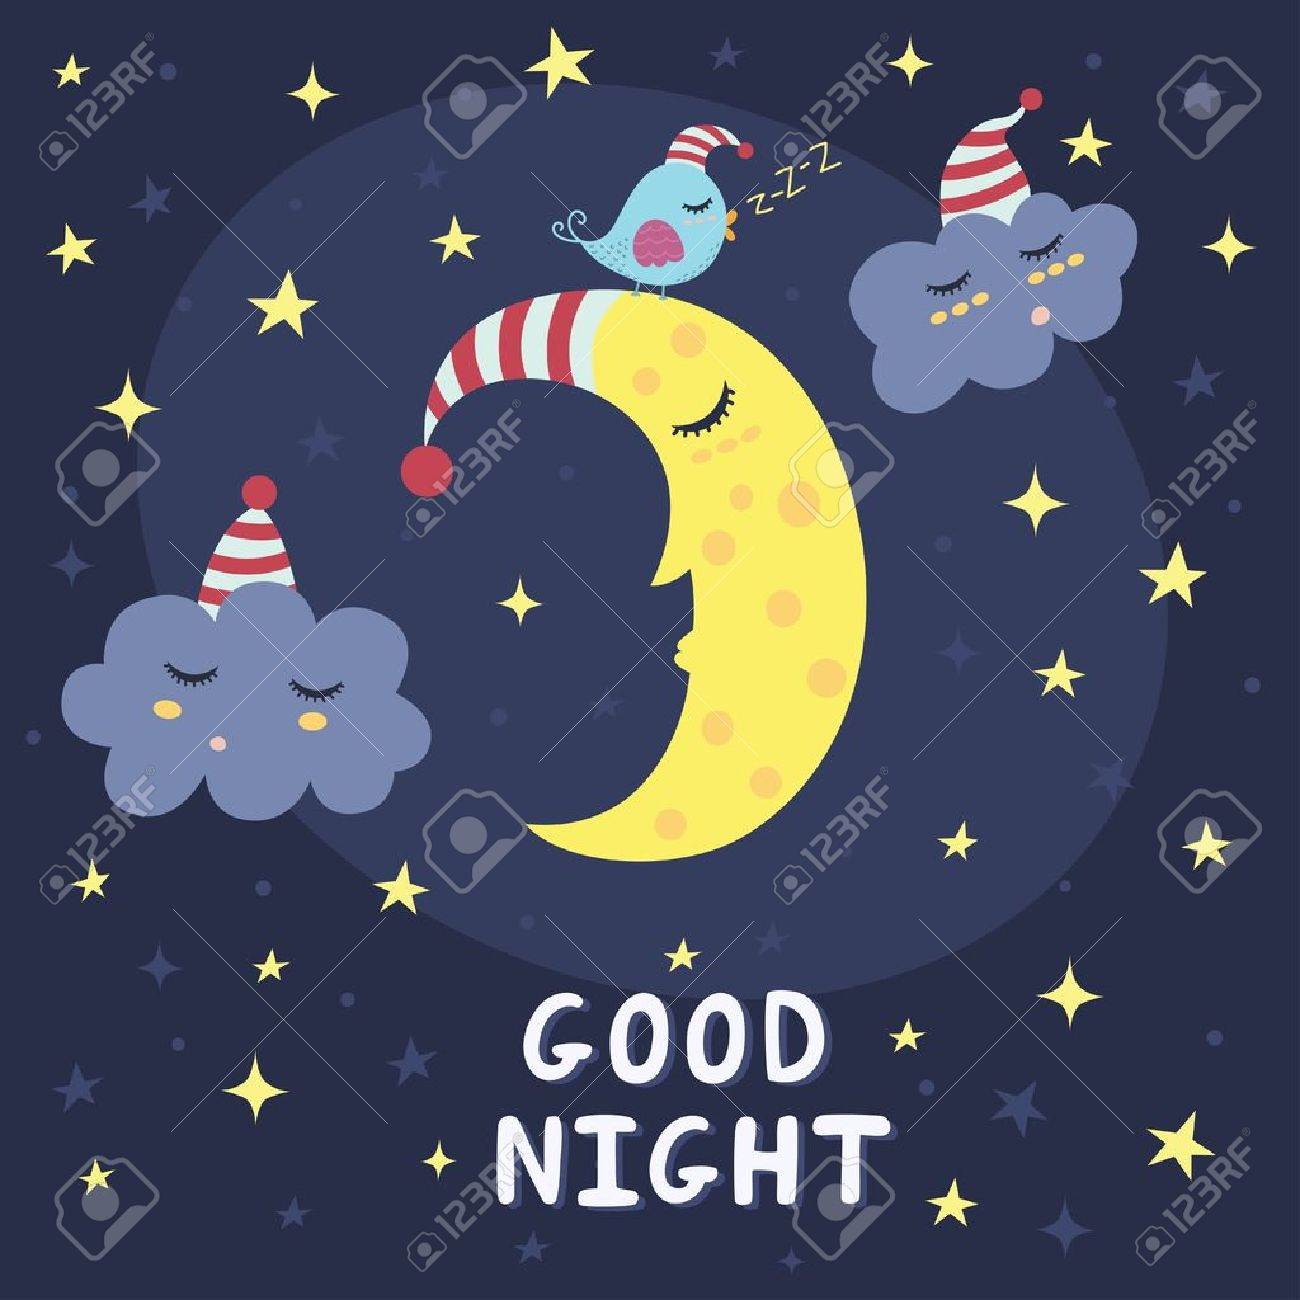 Good night card with the cute sleeping moon, clouds and a bird. Vector illustration - 51326564